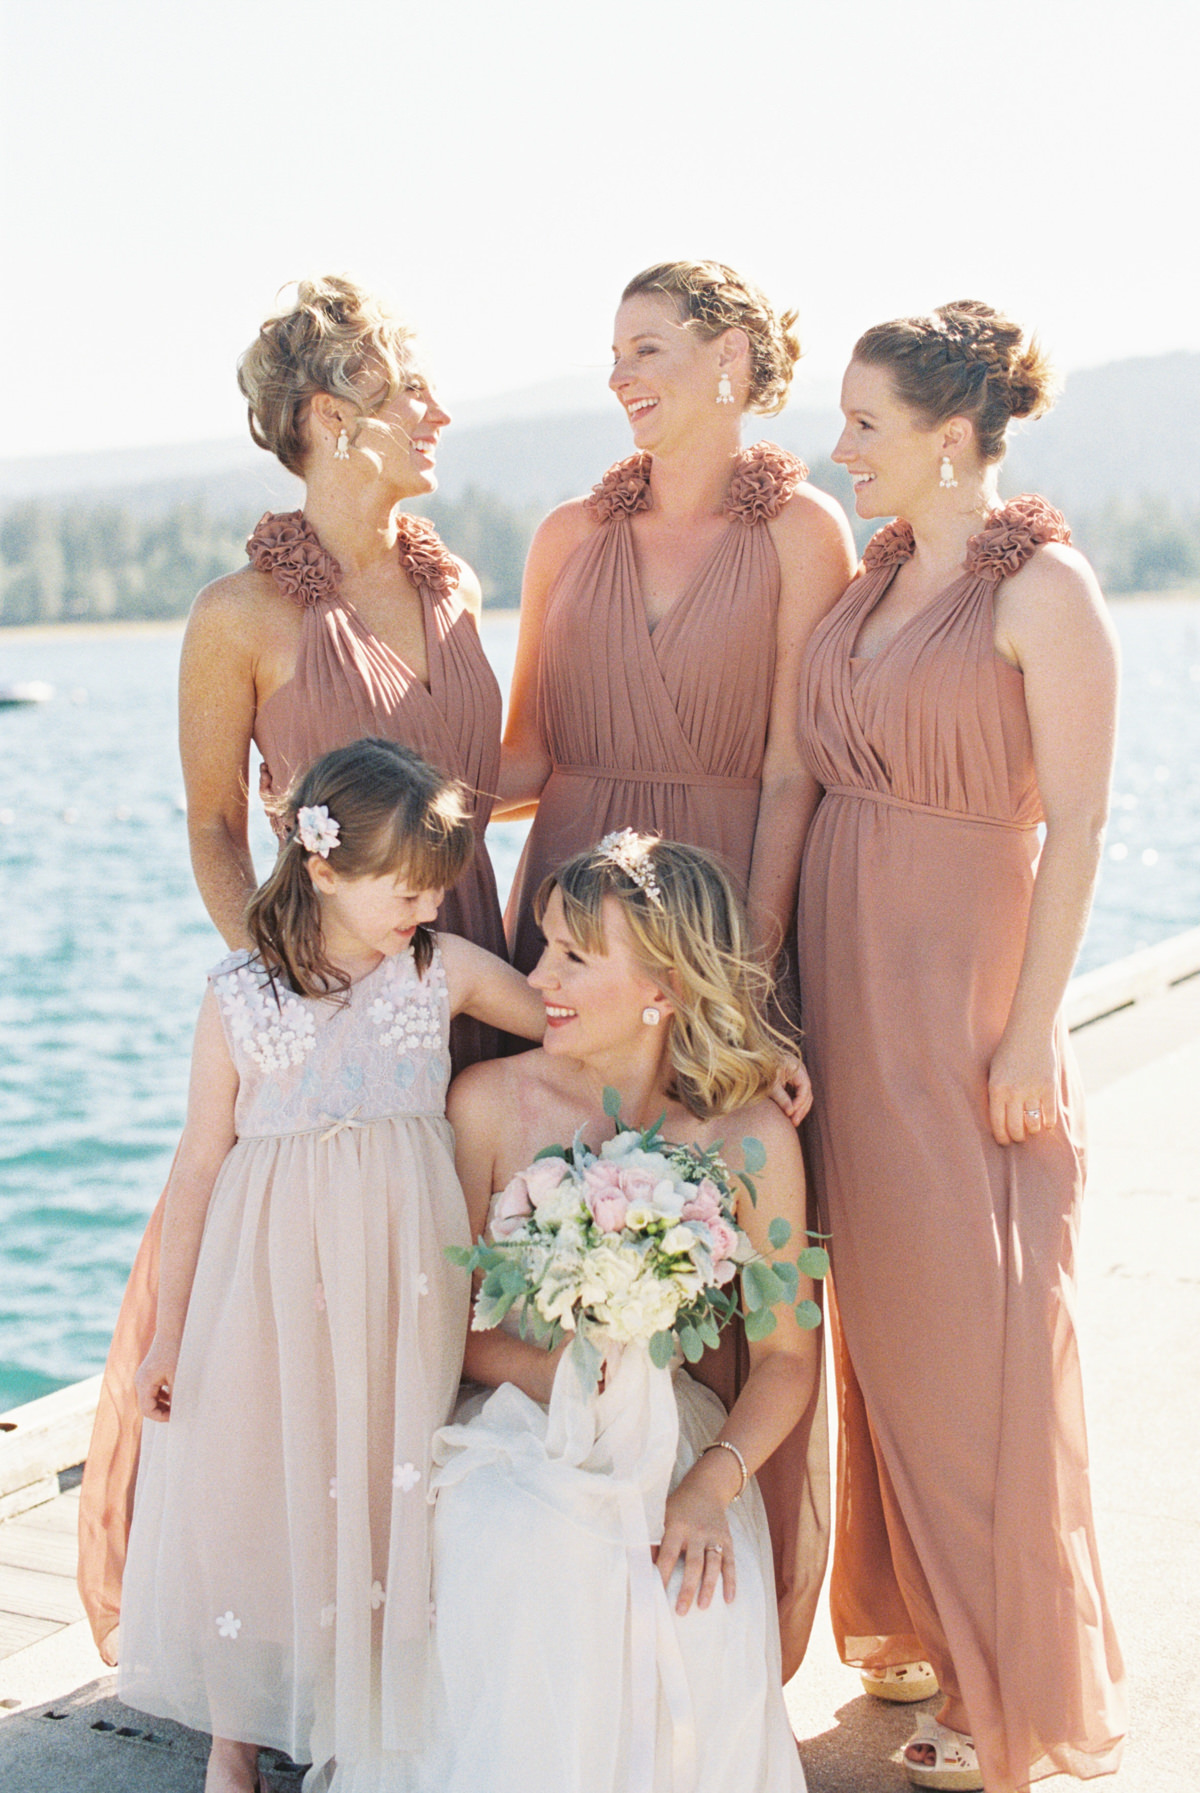 bridal party photo by Matoli Keely Photography